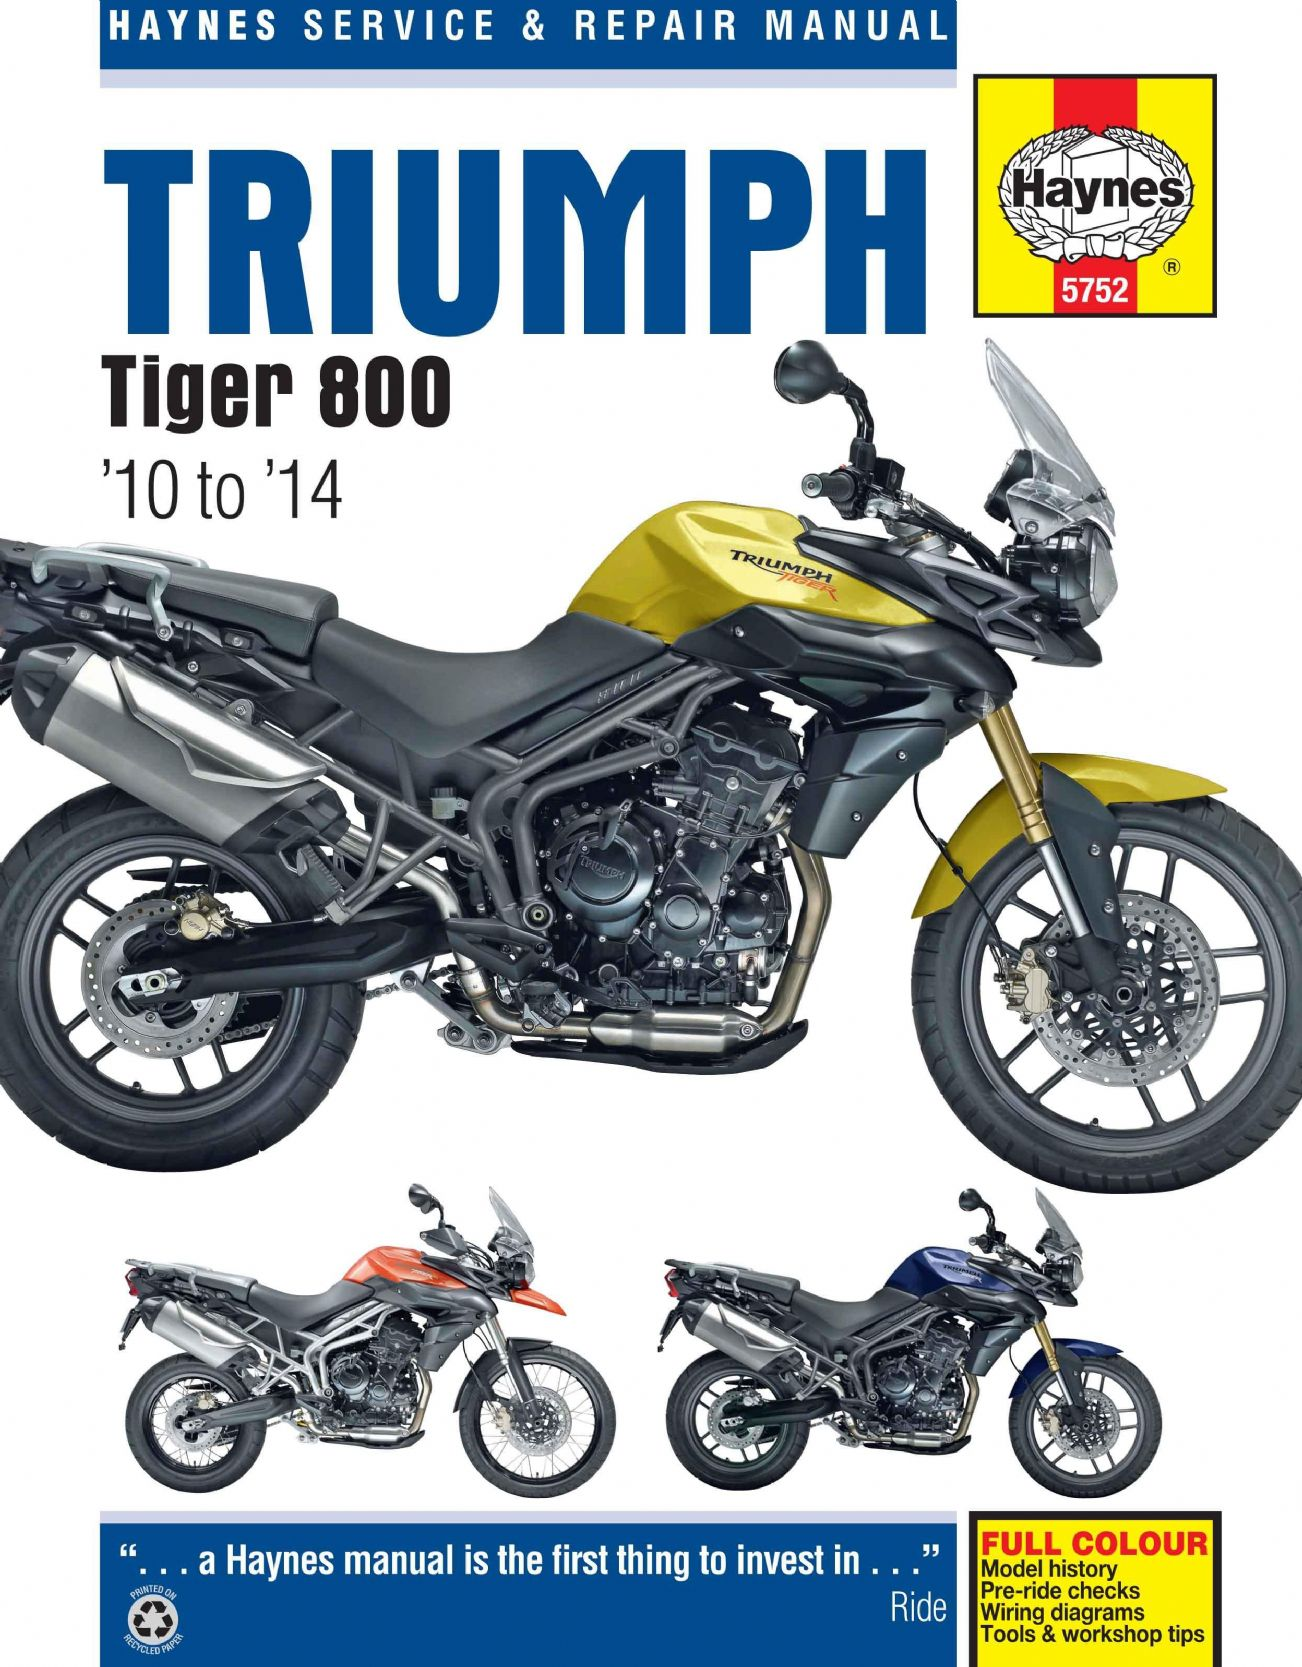 Triumph tiger deals airborne utah coupons 2018 triumph motorcycles include the daytona 675 sportbike tiger 800 and tiger 800xc adventure touring motorcycles speed triple and street triple street fandeluxe Gallery